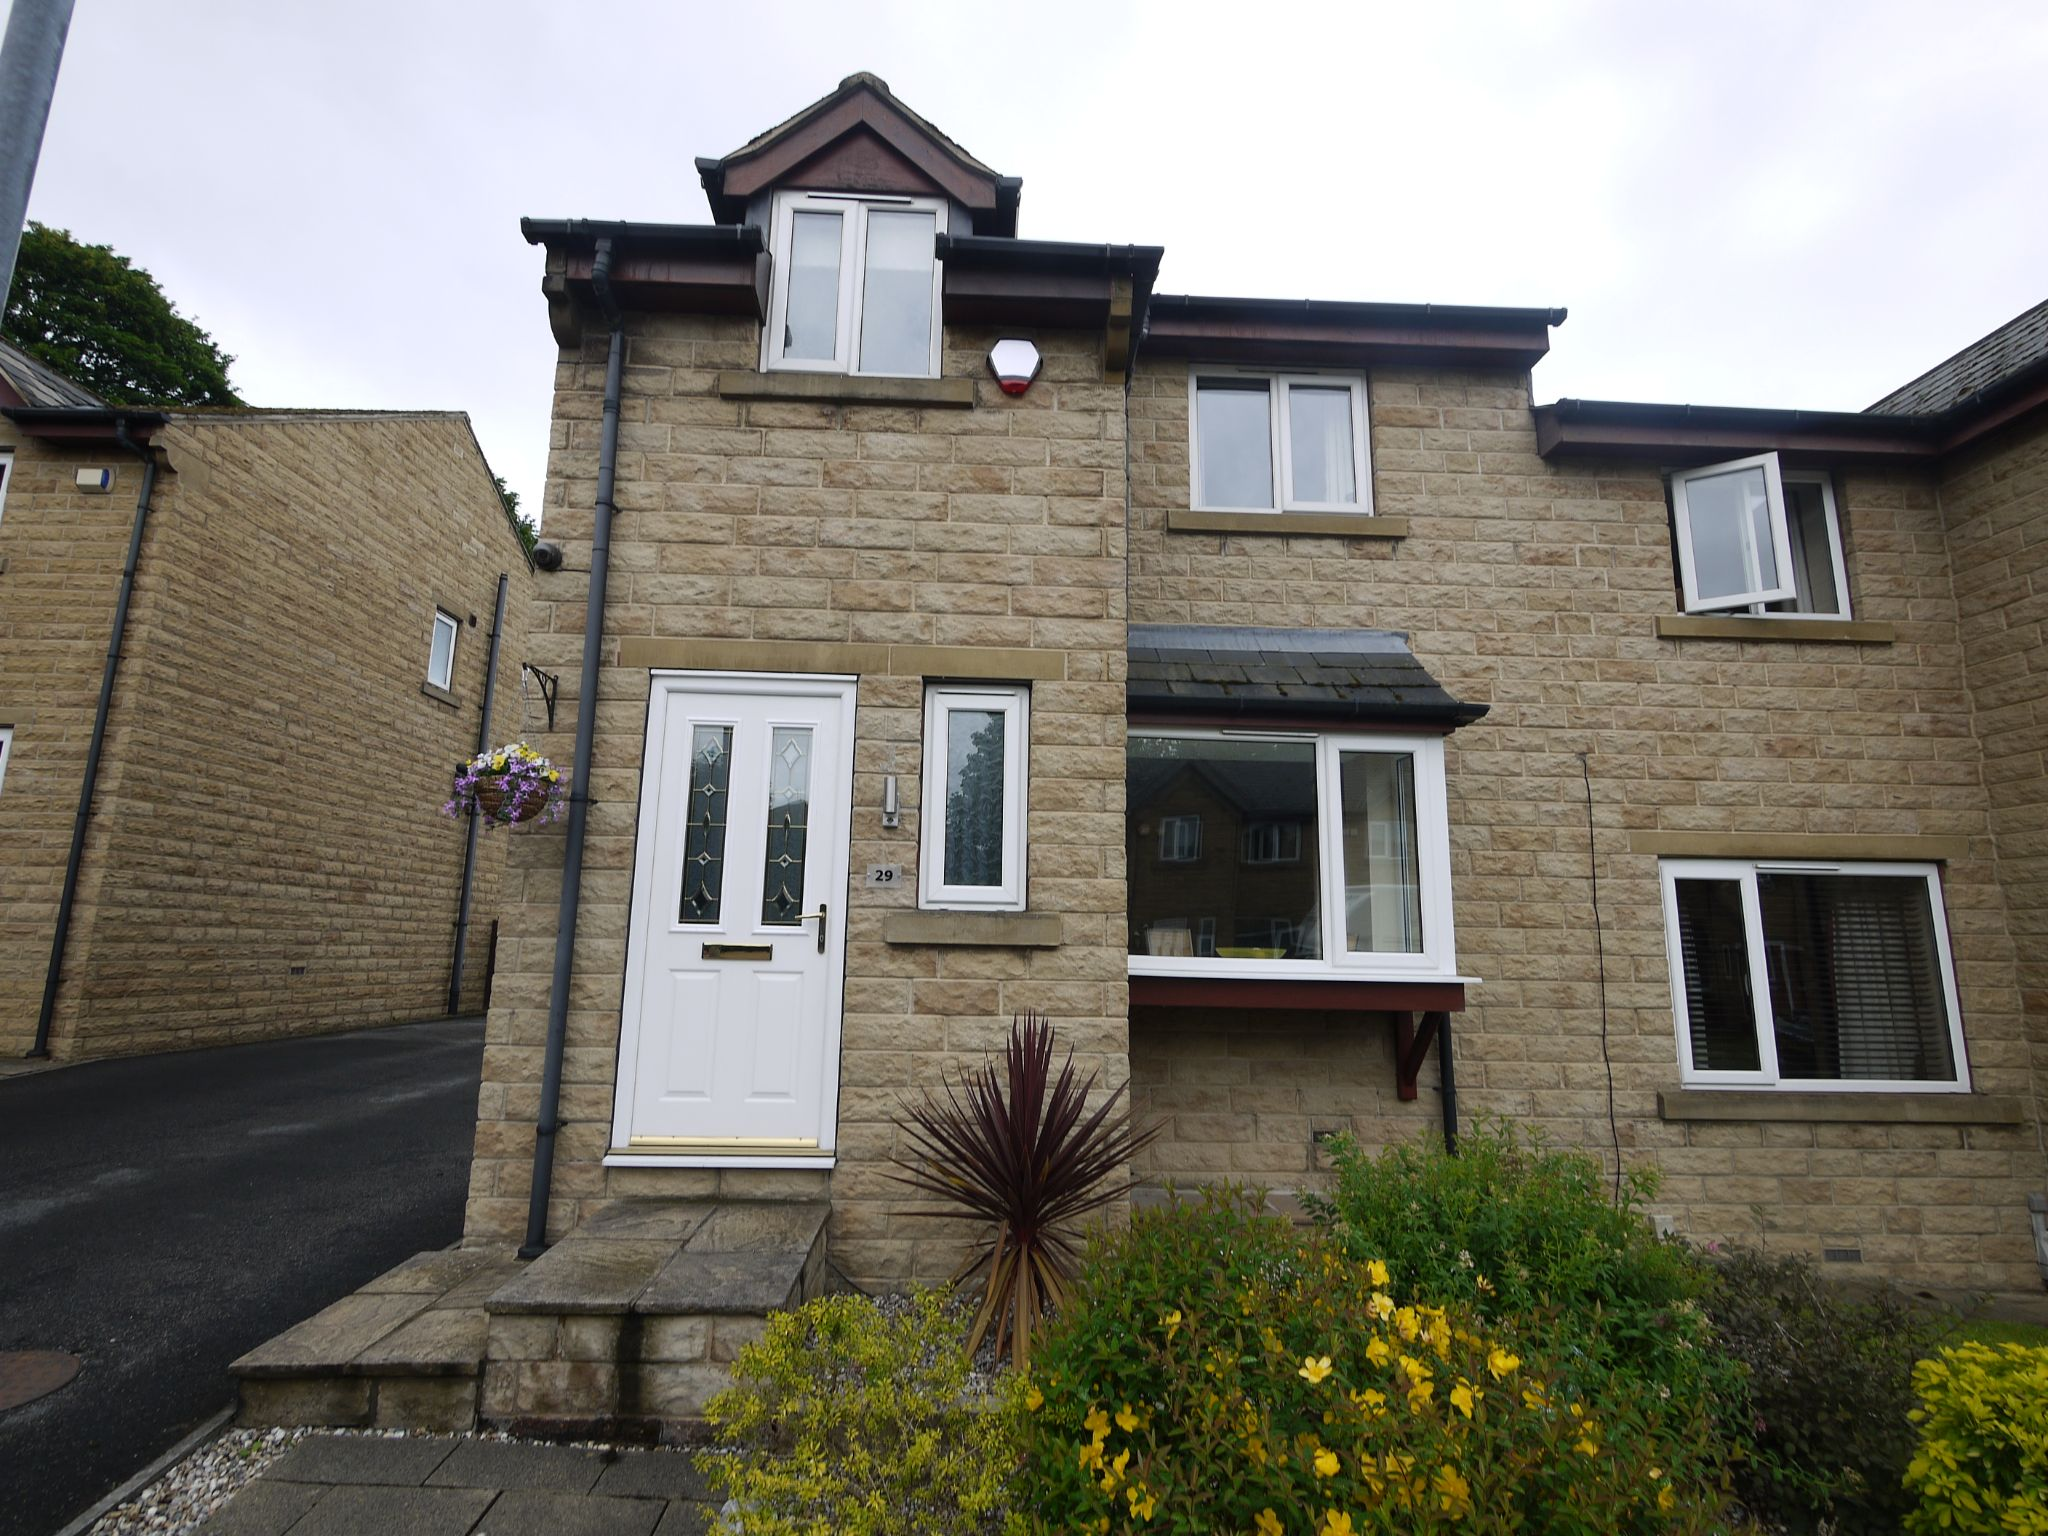 3 bedroom semi-detached house For Sale in Brighouse - External photograph.